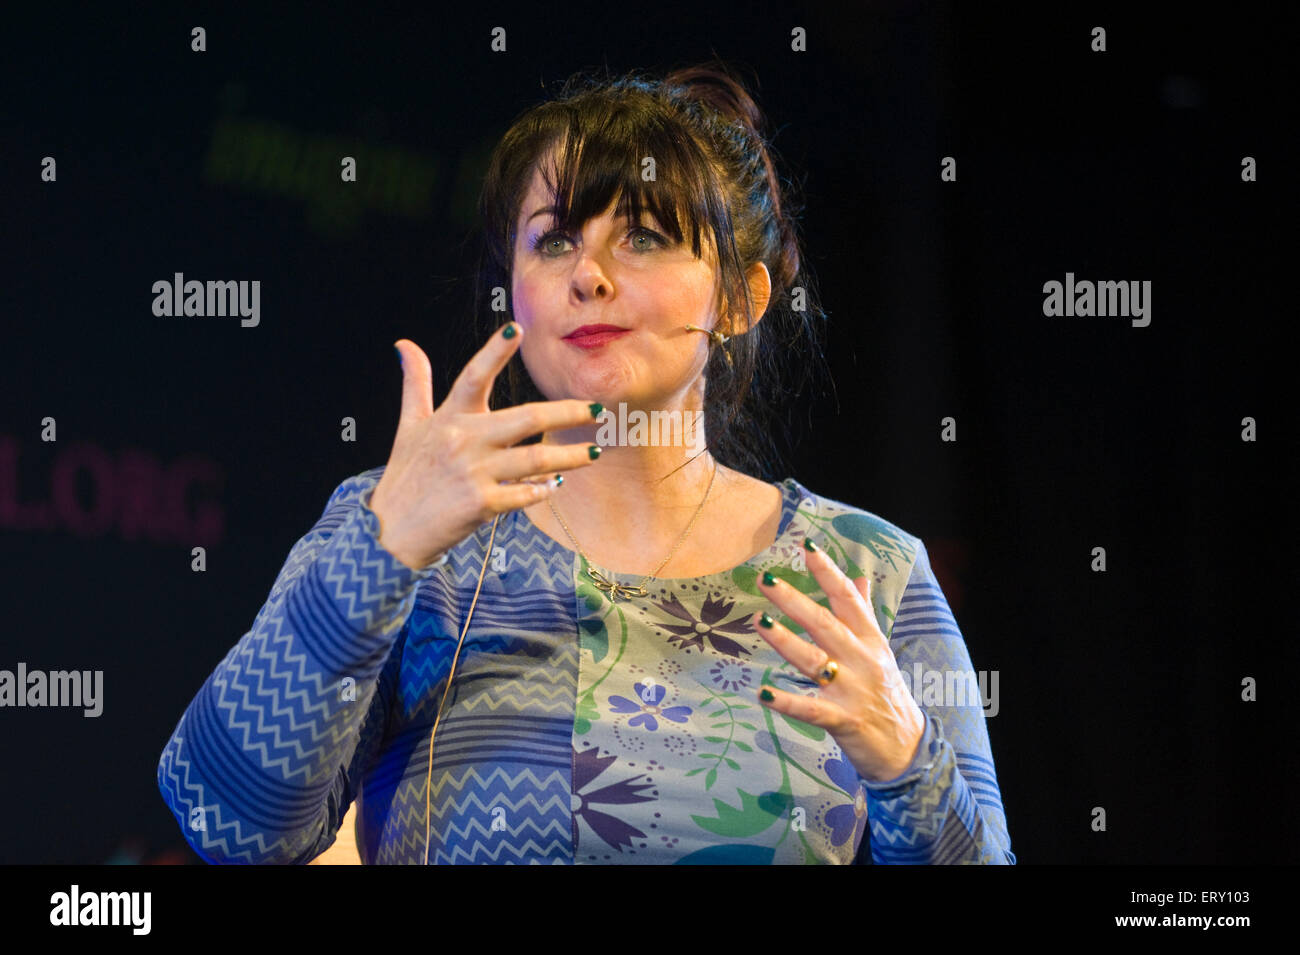 Marian Keyes author speaking on stage at Hay Festival 2015 - Stock Image